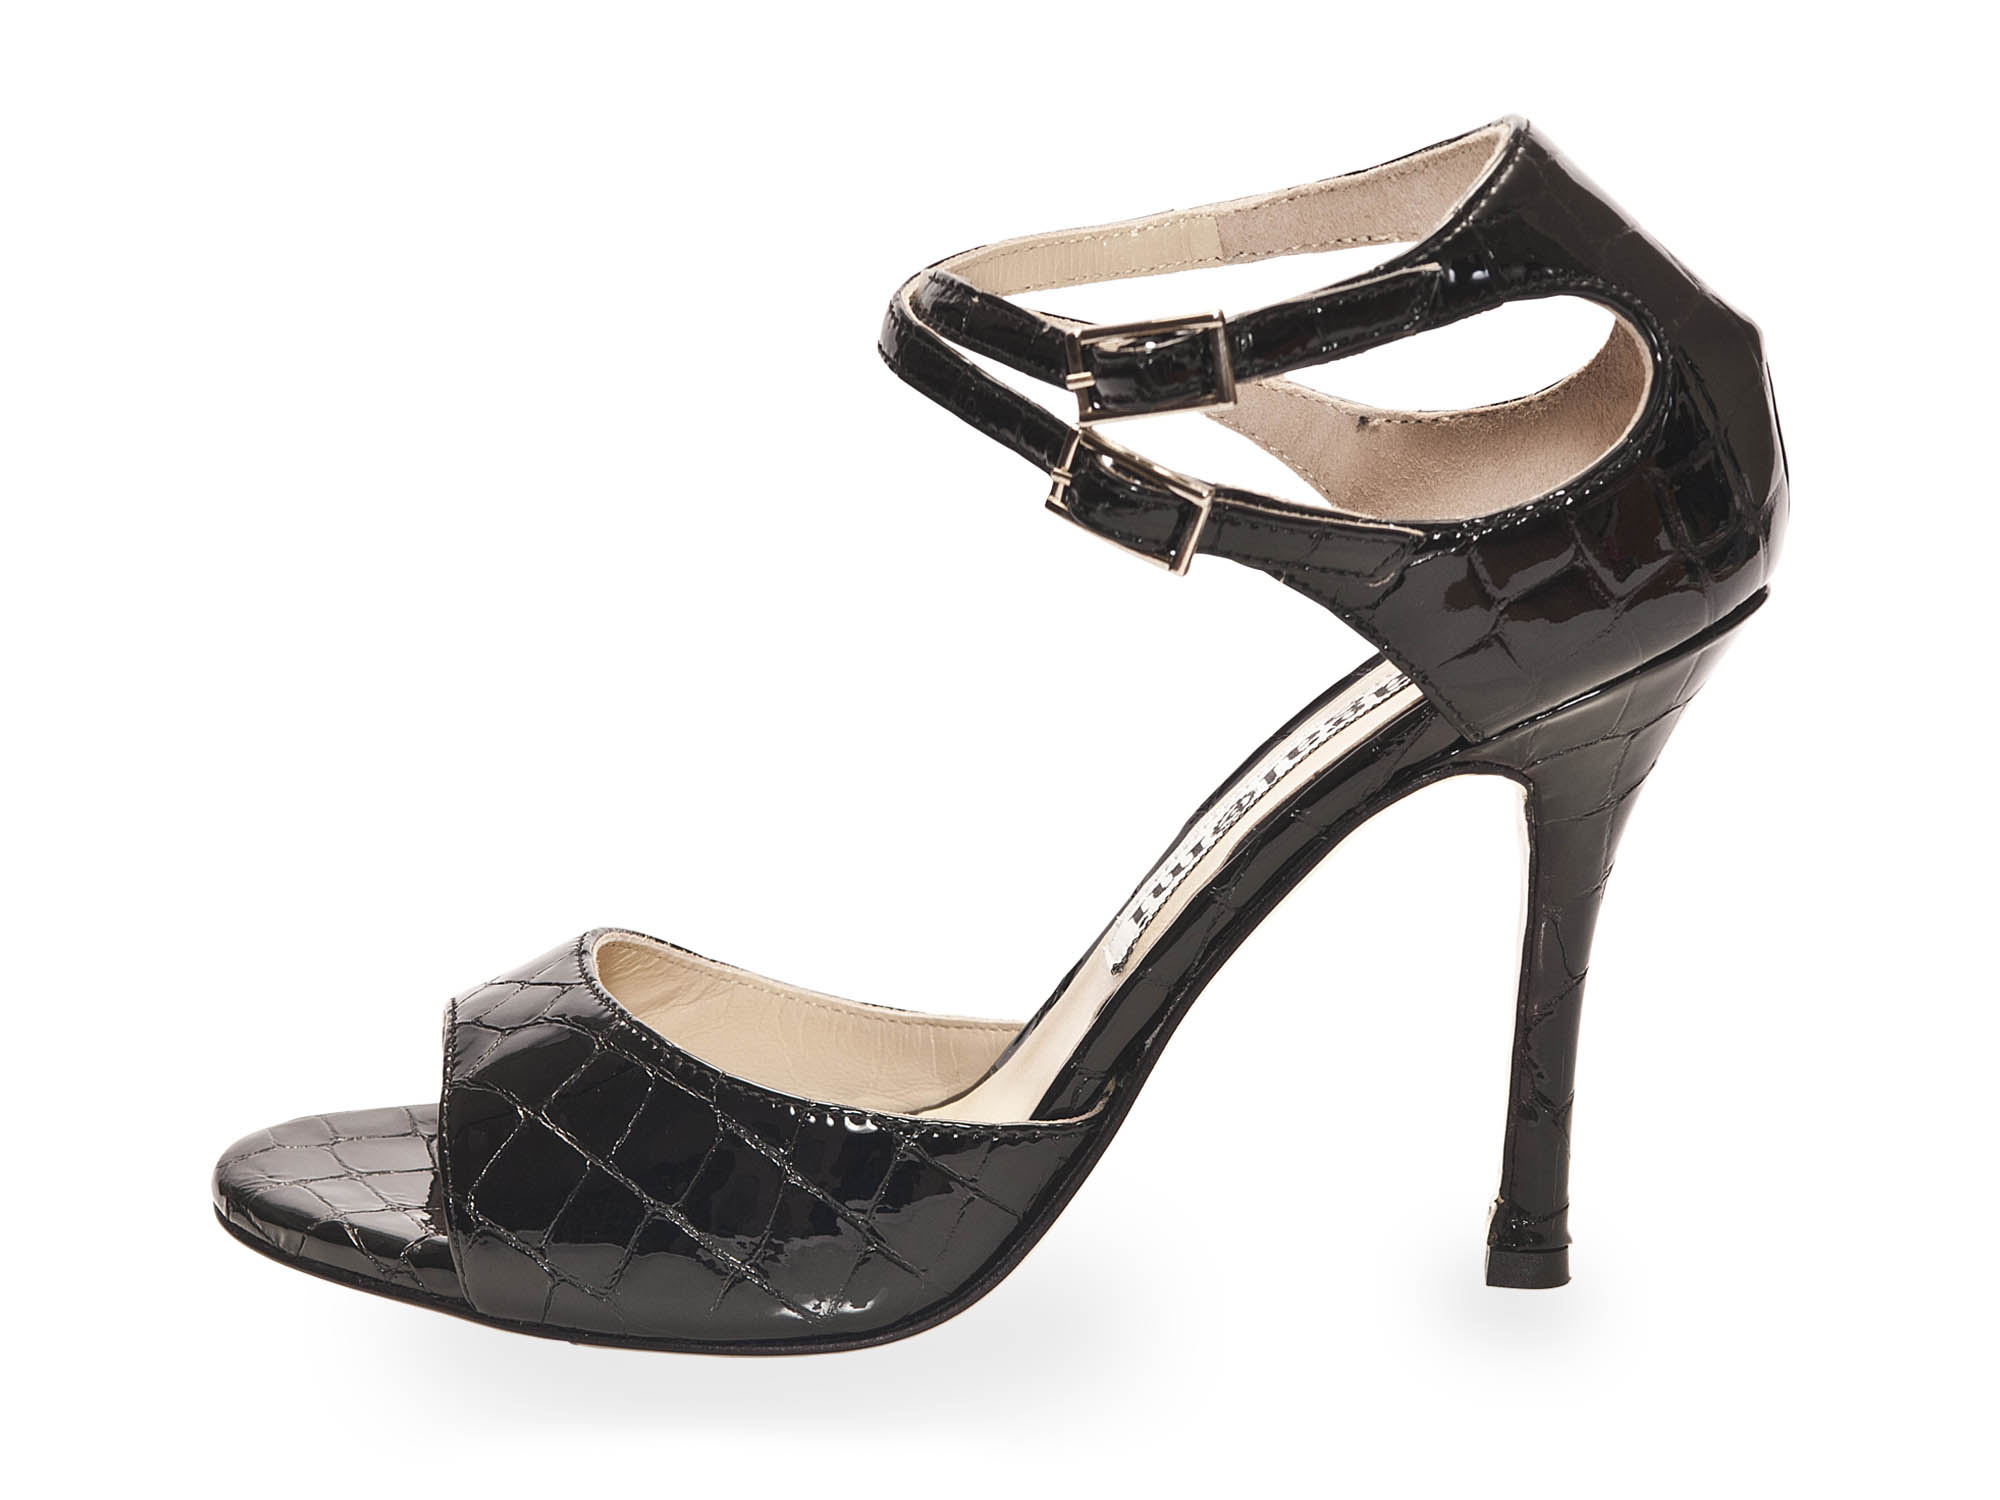 Soho (B) Black Croc Patent Leather